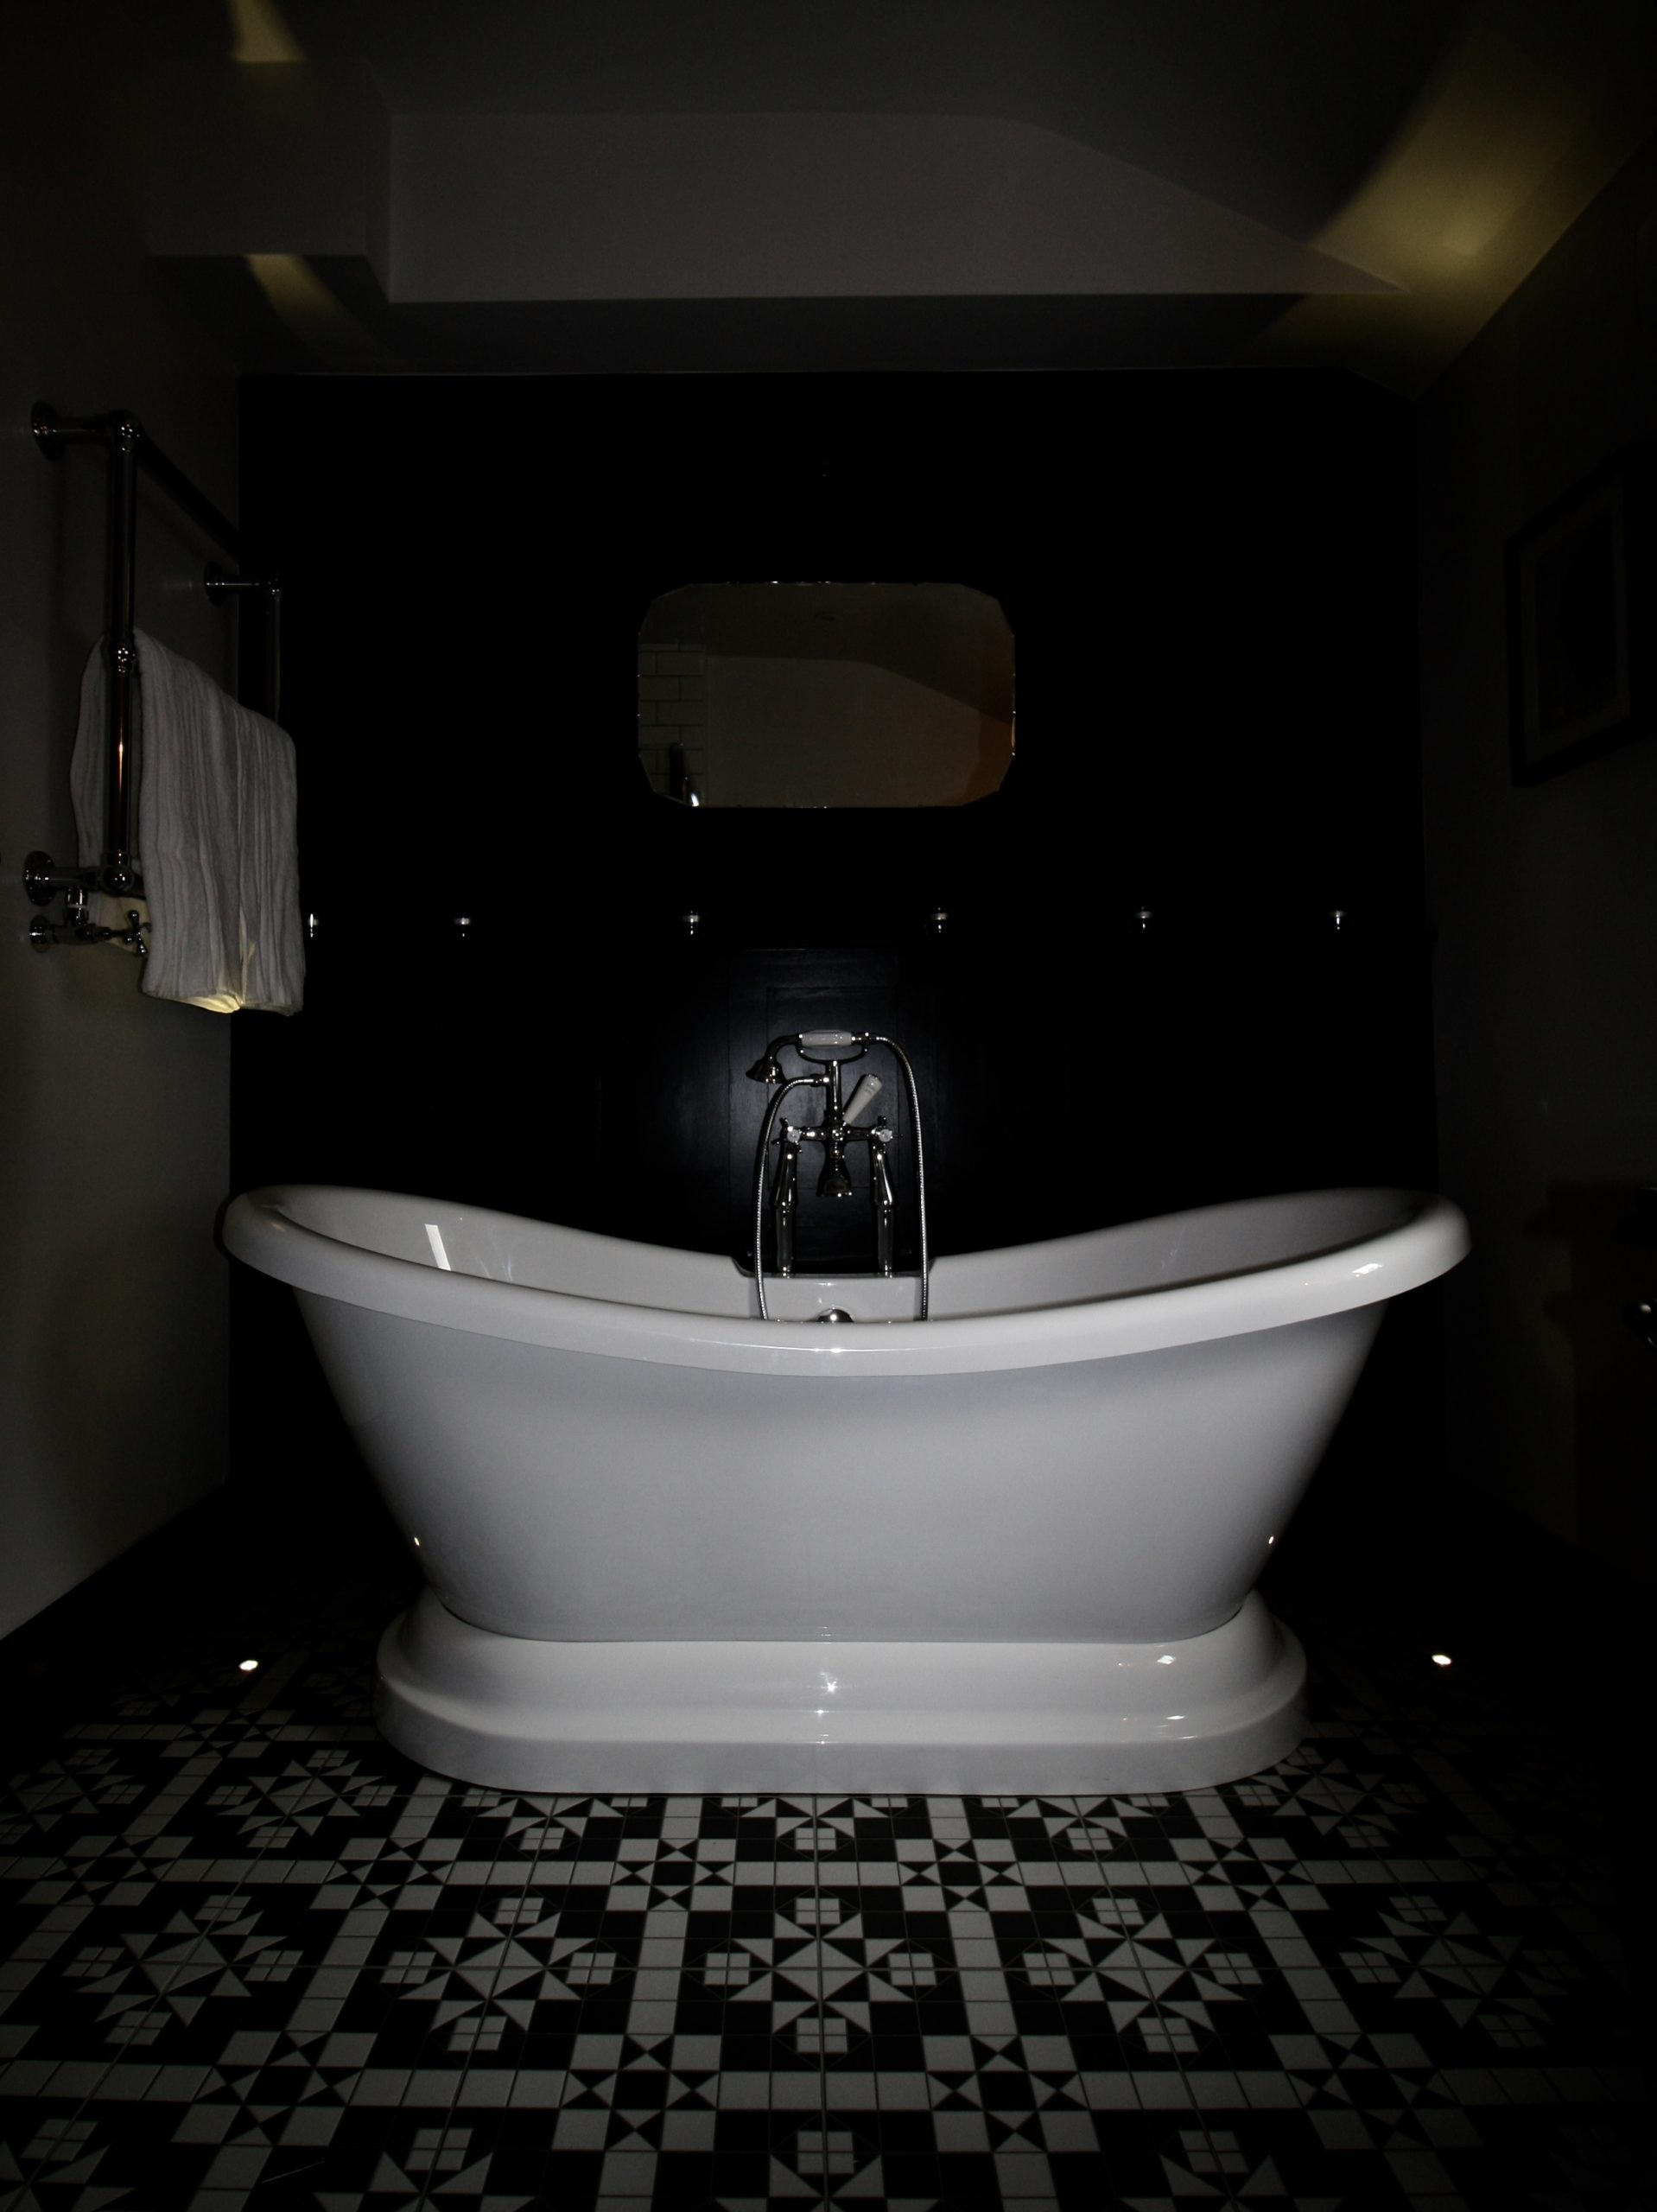 Deck lights used in a bathroom to light a free standing bath from below